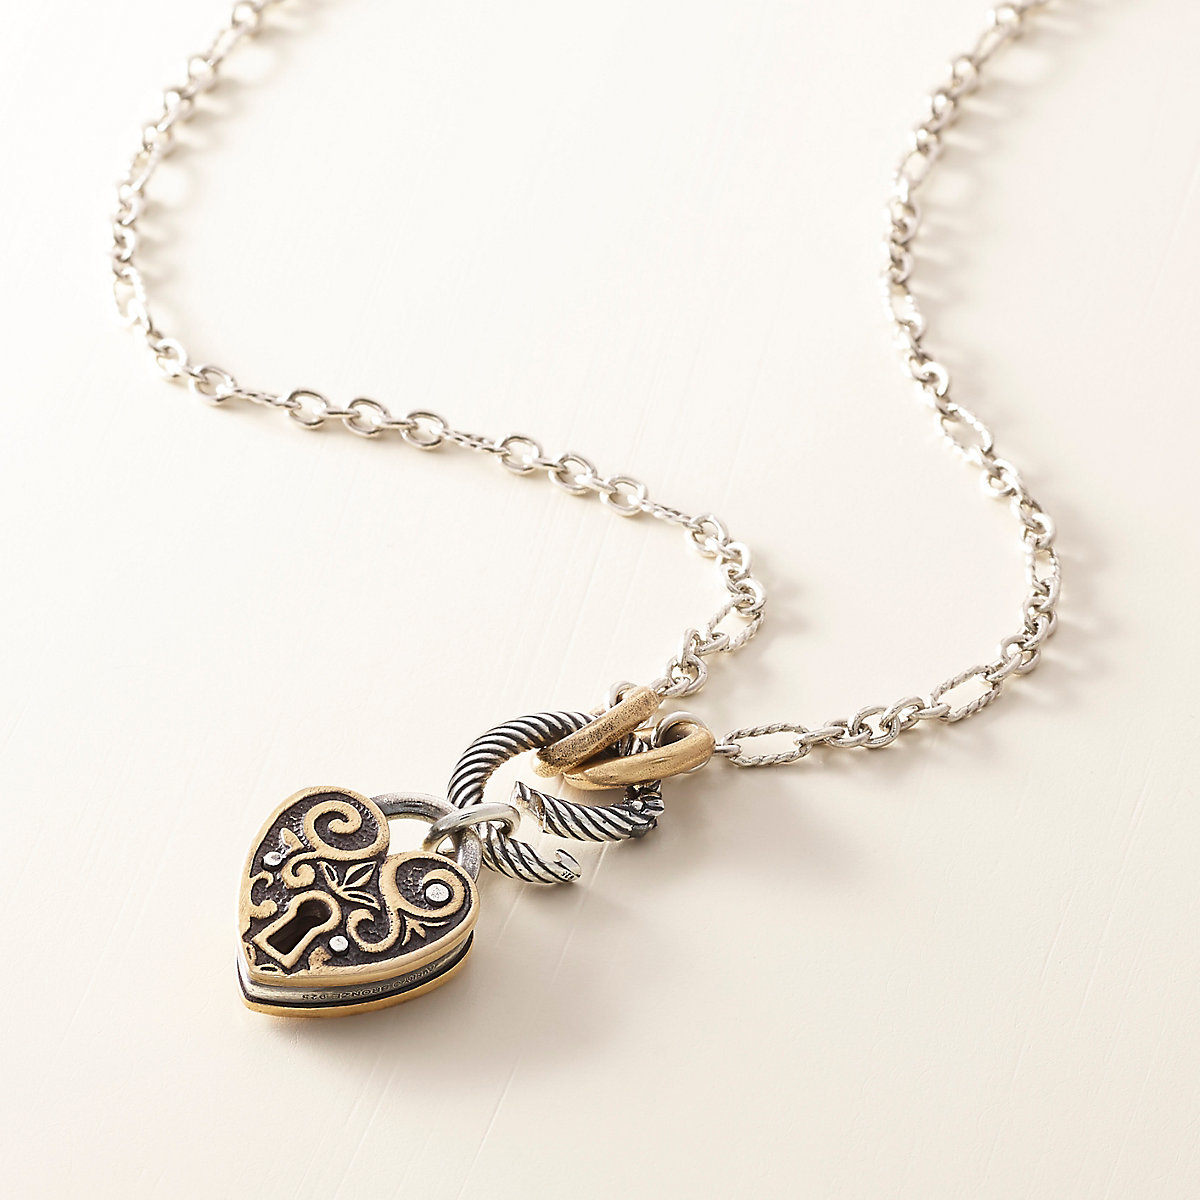 Oval Twist Changeable Charm Holder Necklace   James Avery